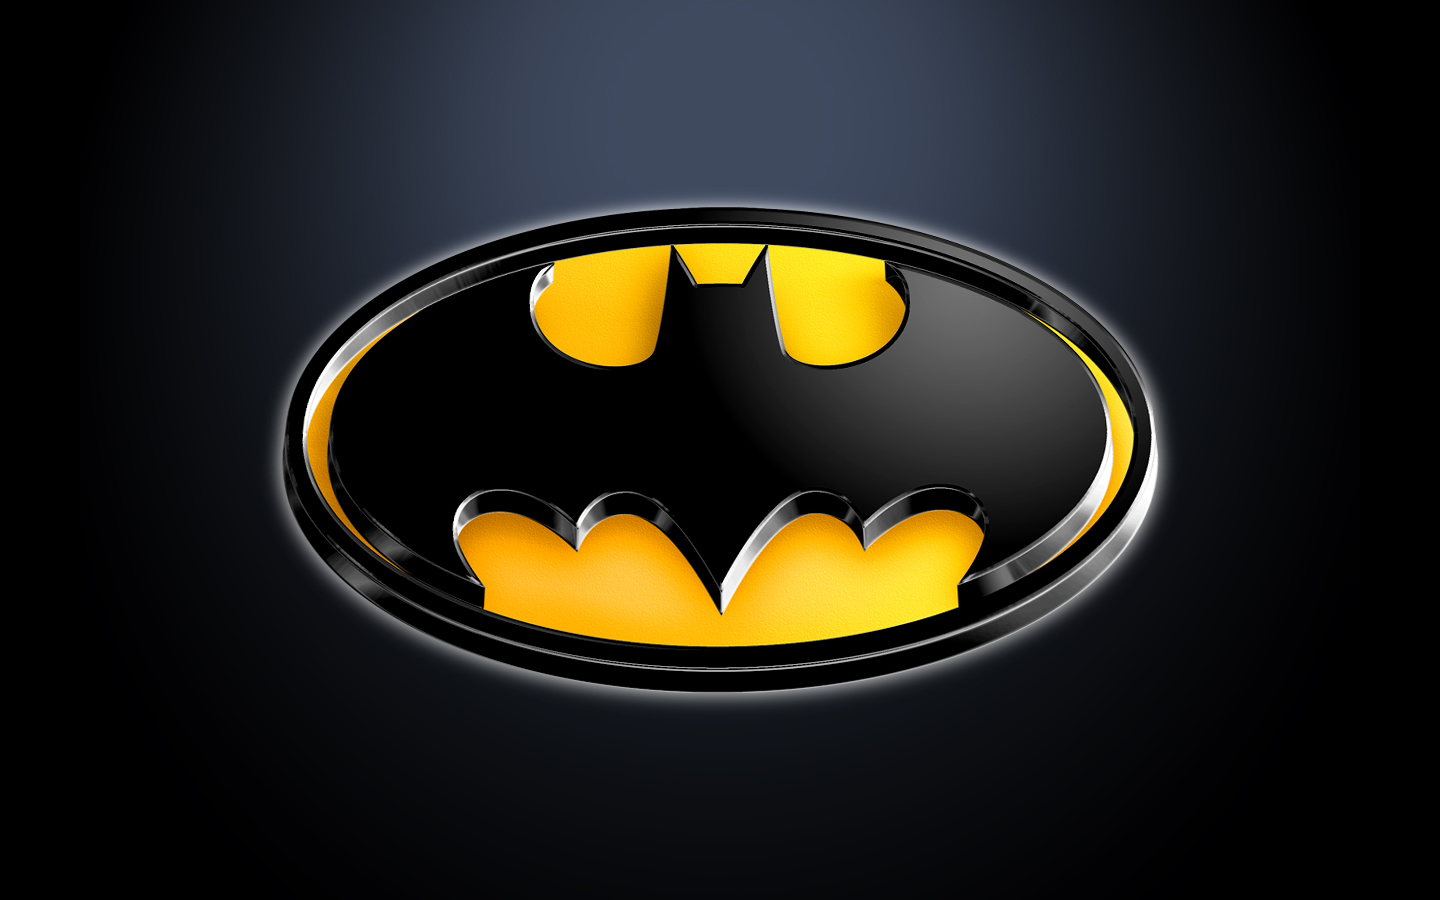 Batman Logo Wallpapers   1440x900   278095 1440x900